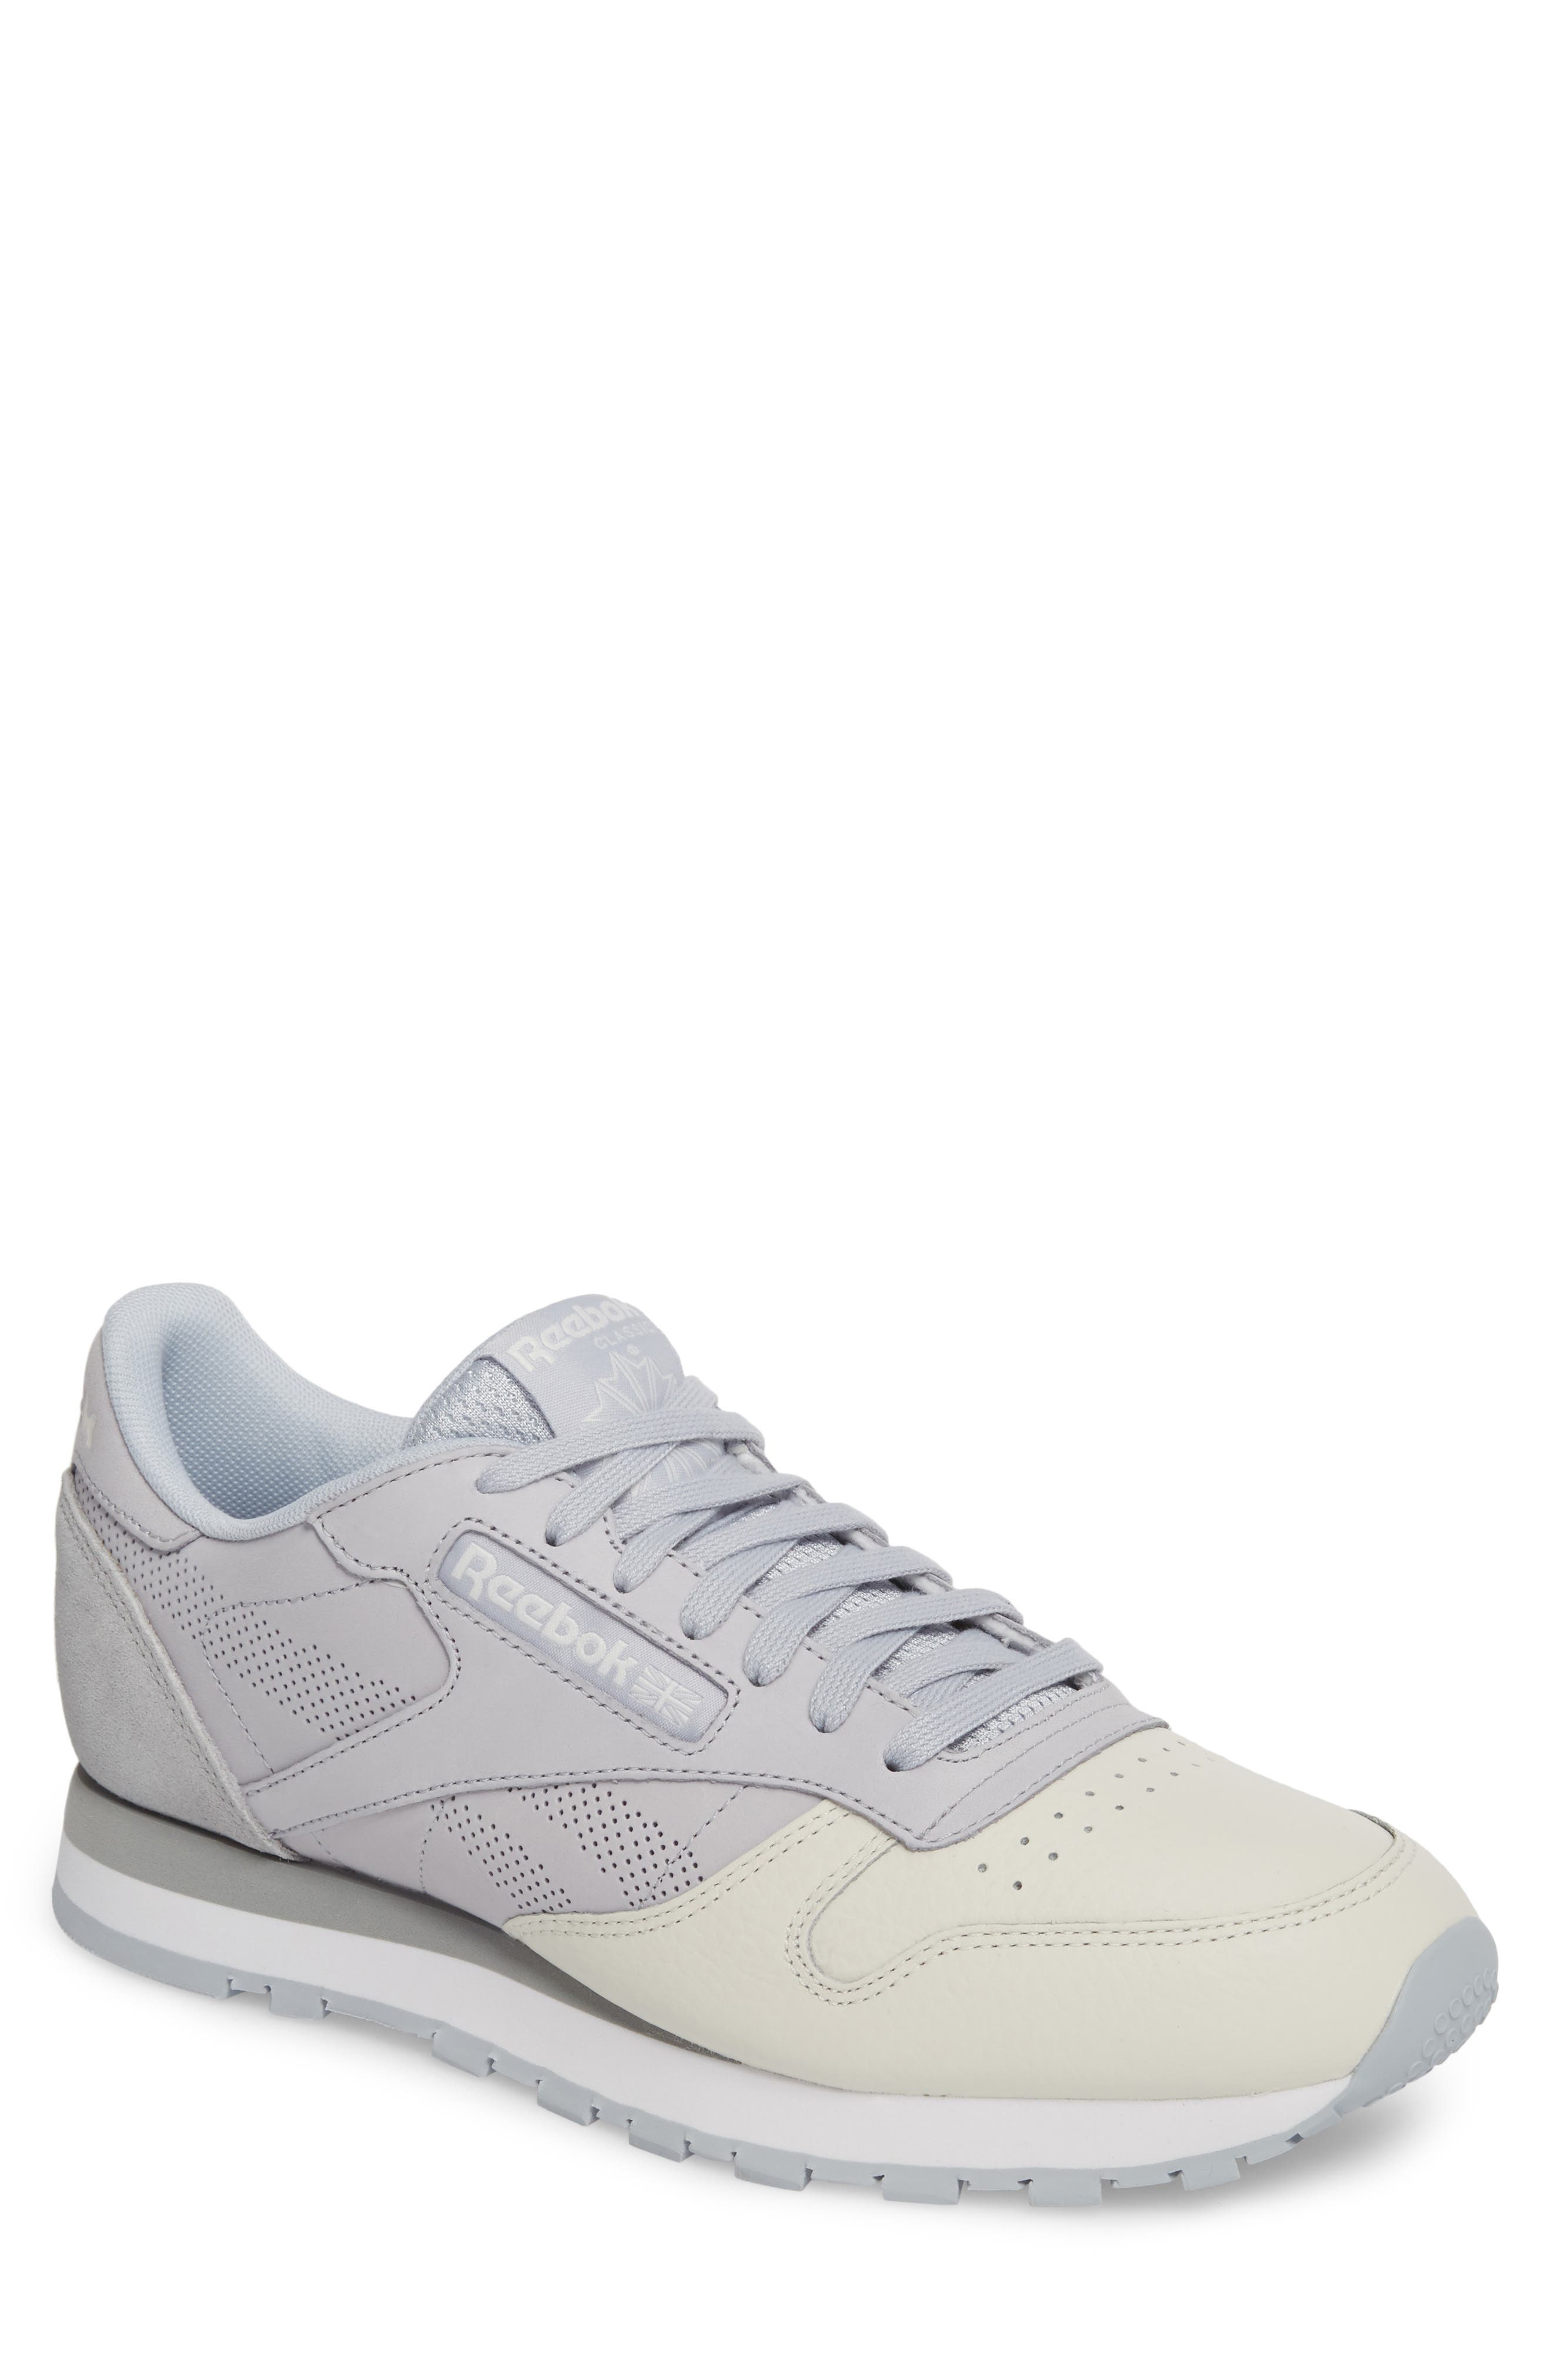 Classic Leather UE Sneaker,                             Main thumbnail 1, color,                             Grey/ Chalk/ Stark Grey/ White